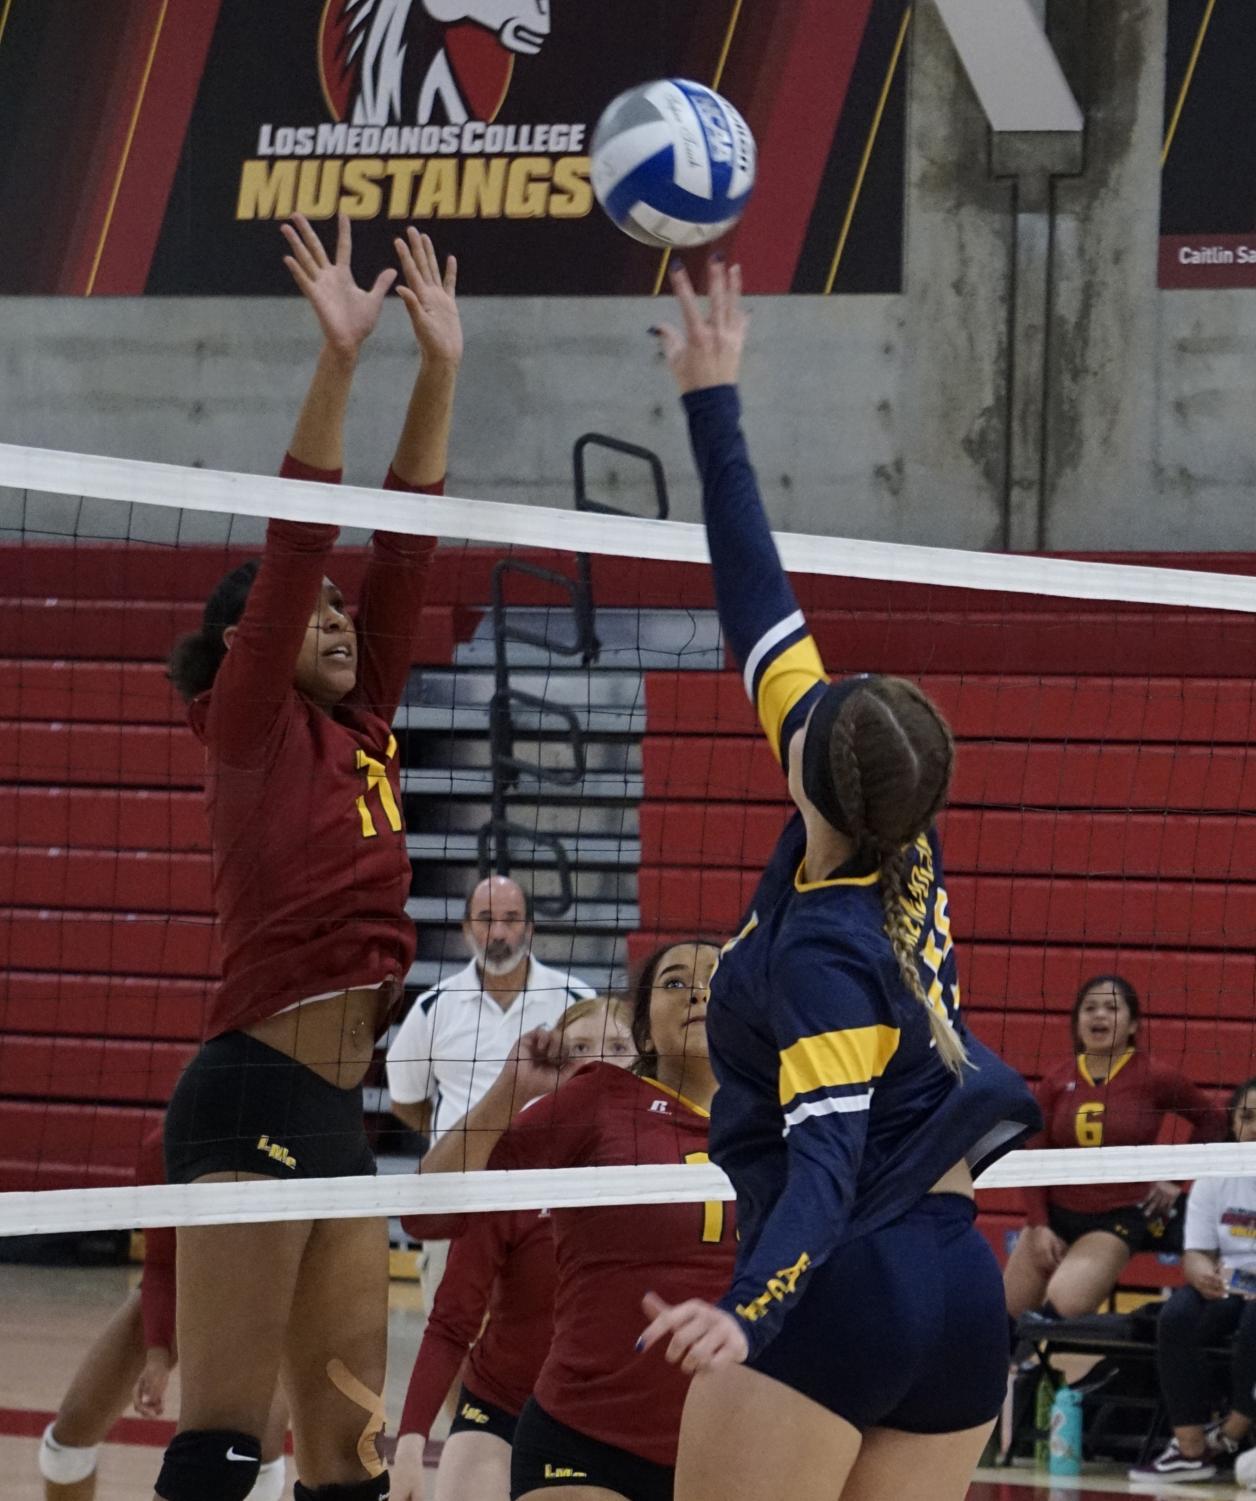 Amaya Mixon, No. 11, jumps above the net to block the ball from going over the net against a Mendocino College player.